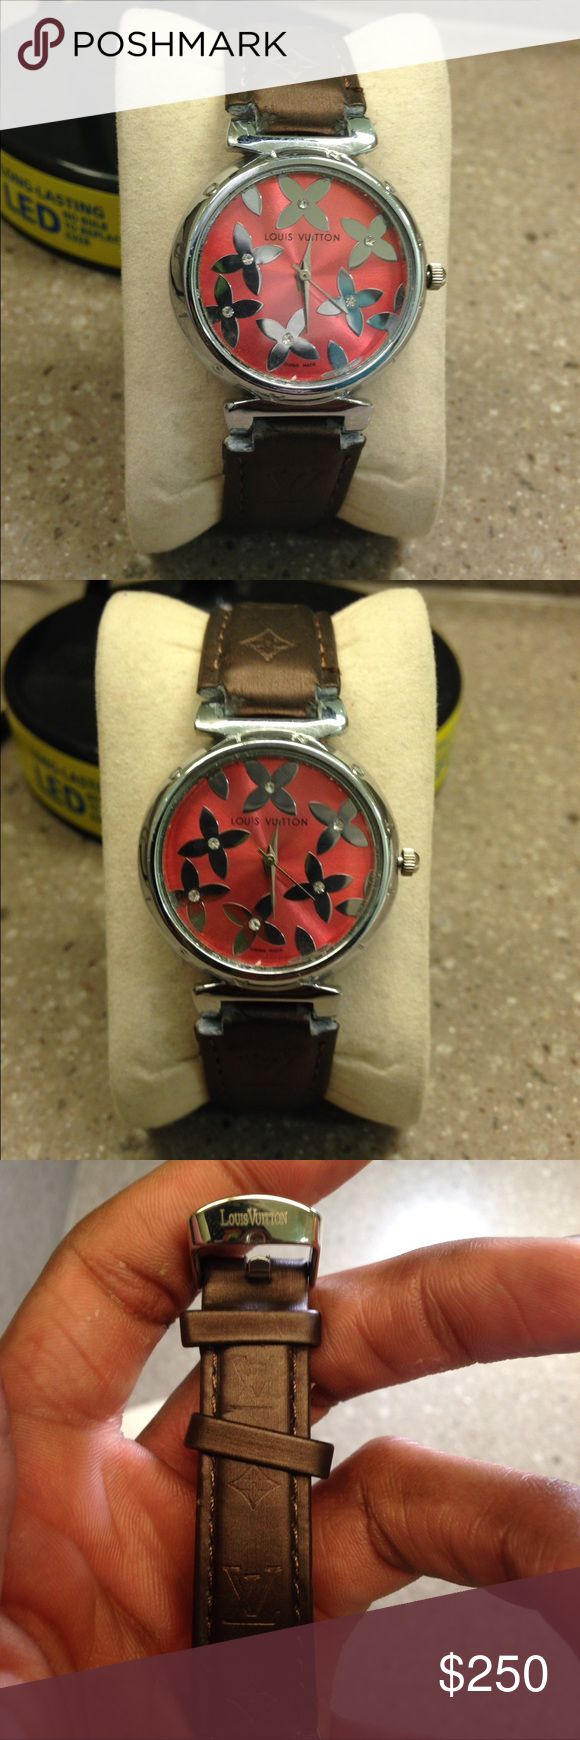 Brown Louis Vuitton Watch -Louis Vuitton Logo Engraved In The Scrap -Original Price Was $1150 -Diamonds on the face of the Watch -Classic Designer Watch, not to flashy but elegant  -Great Deal, Purchase for the fraction of the price  -Don't hesitate to make a offer, I accept ALL offer Louis Vuitton Accessories Watches